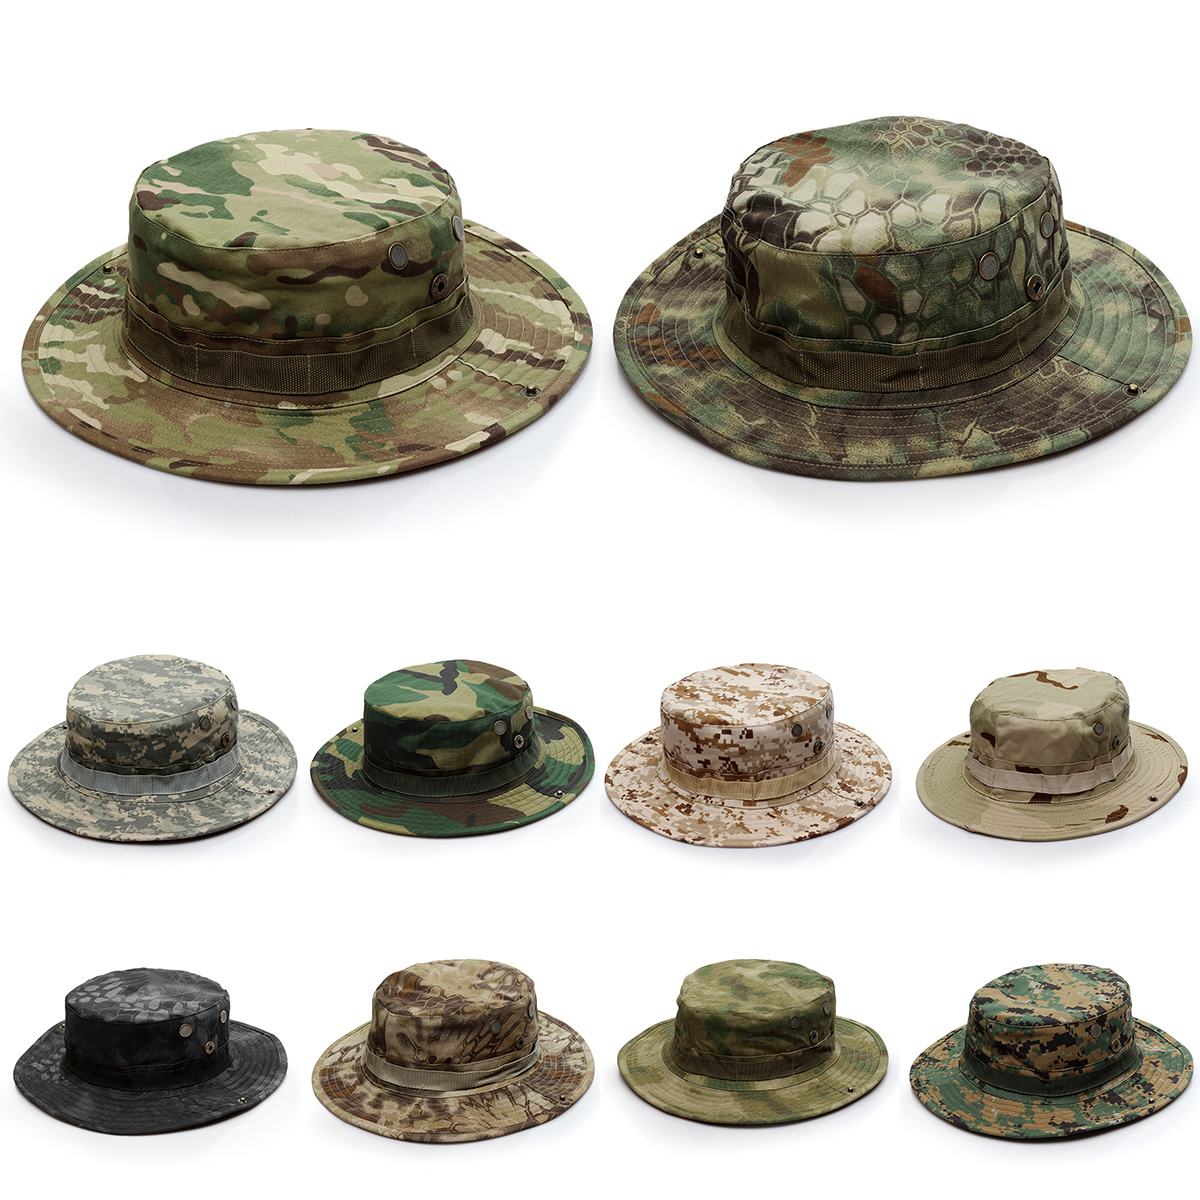 6a465f00ef0 Details about Outdoor Tactical Boonie Hat Military Camo Wide Brim Sun Fishing  Camping Cap New